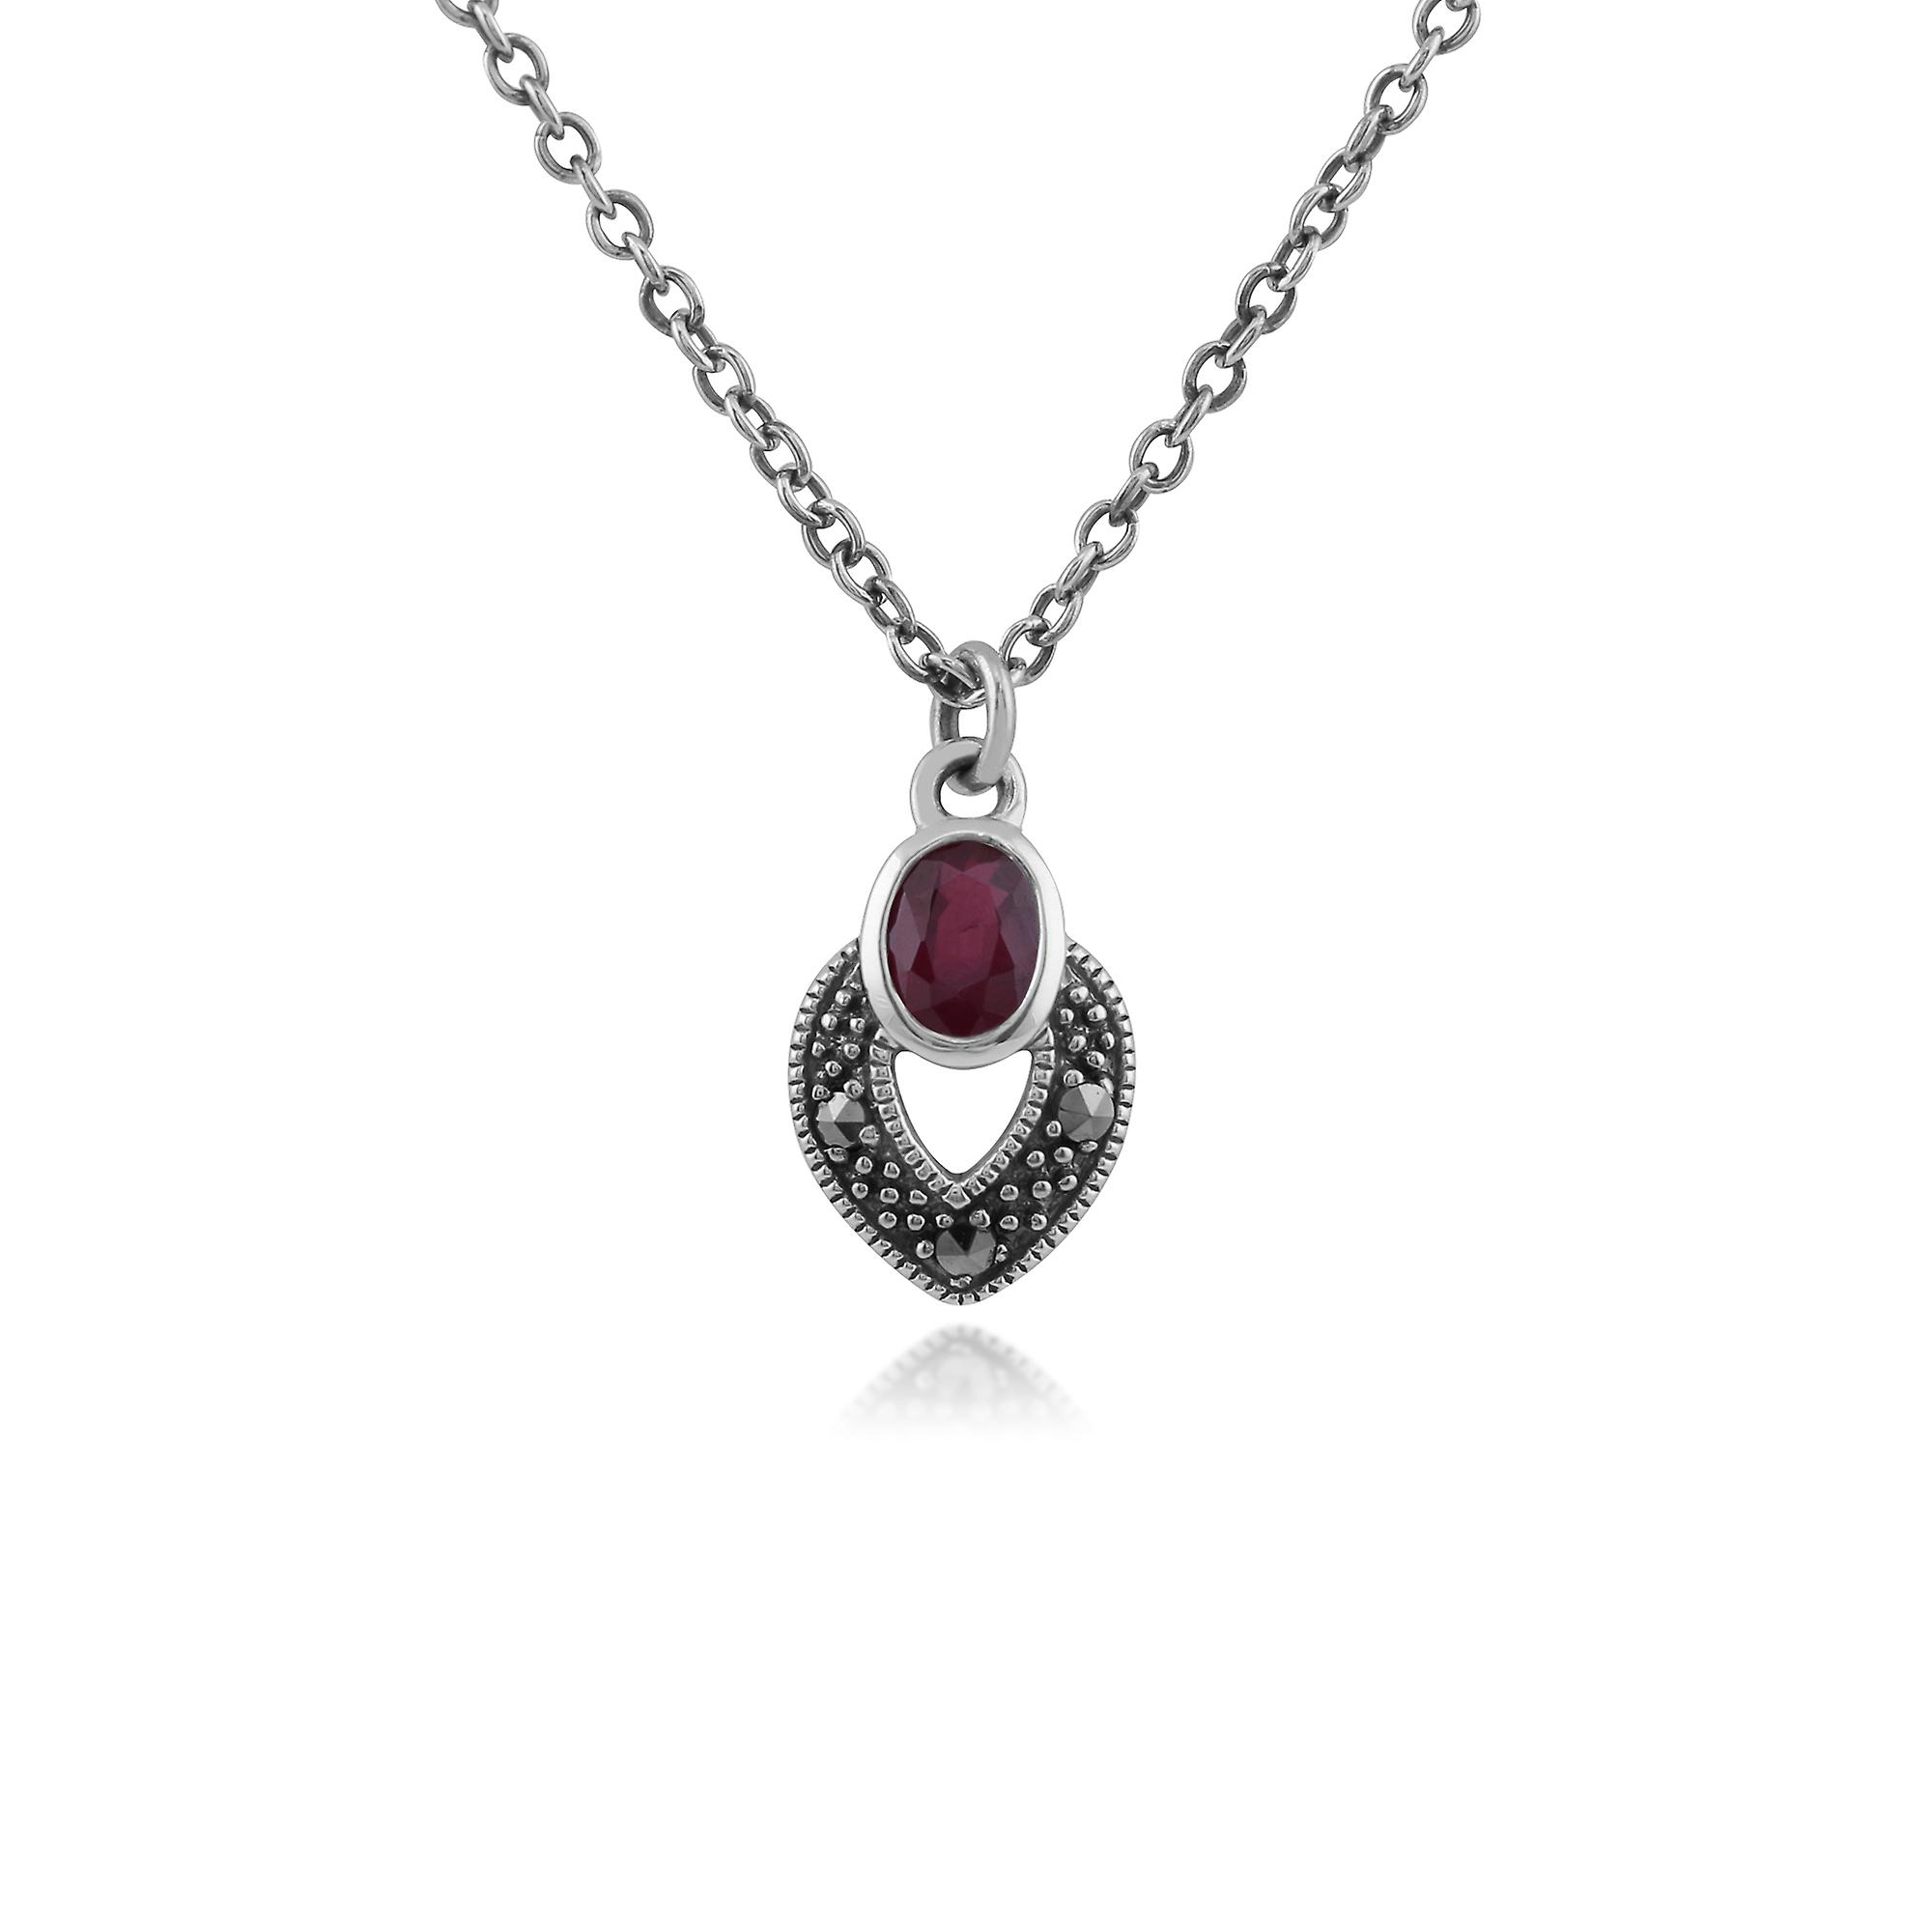 Gemondo Sterling Silver Art Deco Ruby & Marcasite Necklace